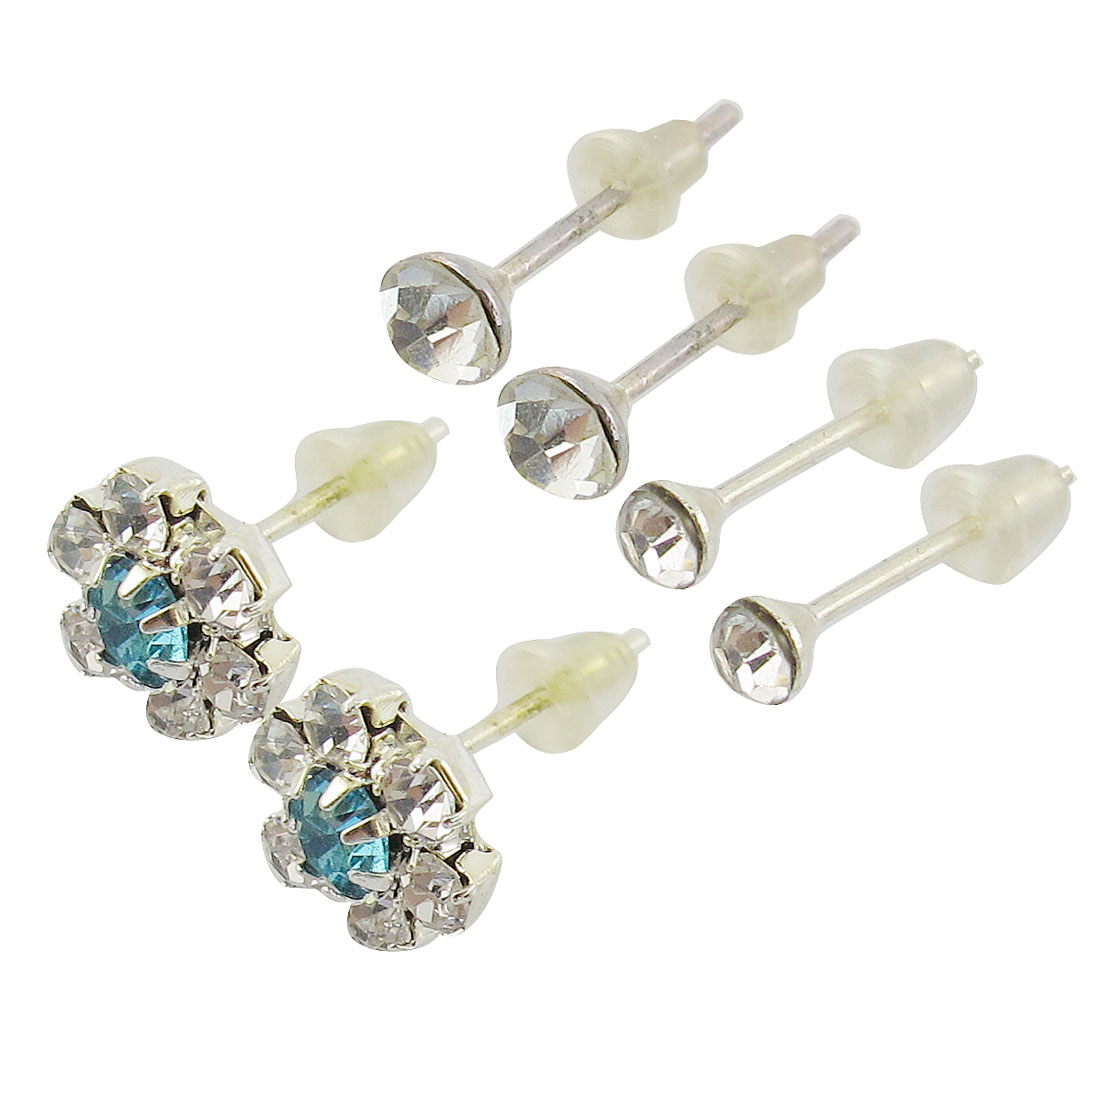 Ladies Teal Rhinestone Detailing Silver Tone Stud Earrings 3 Pairs